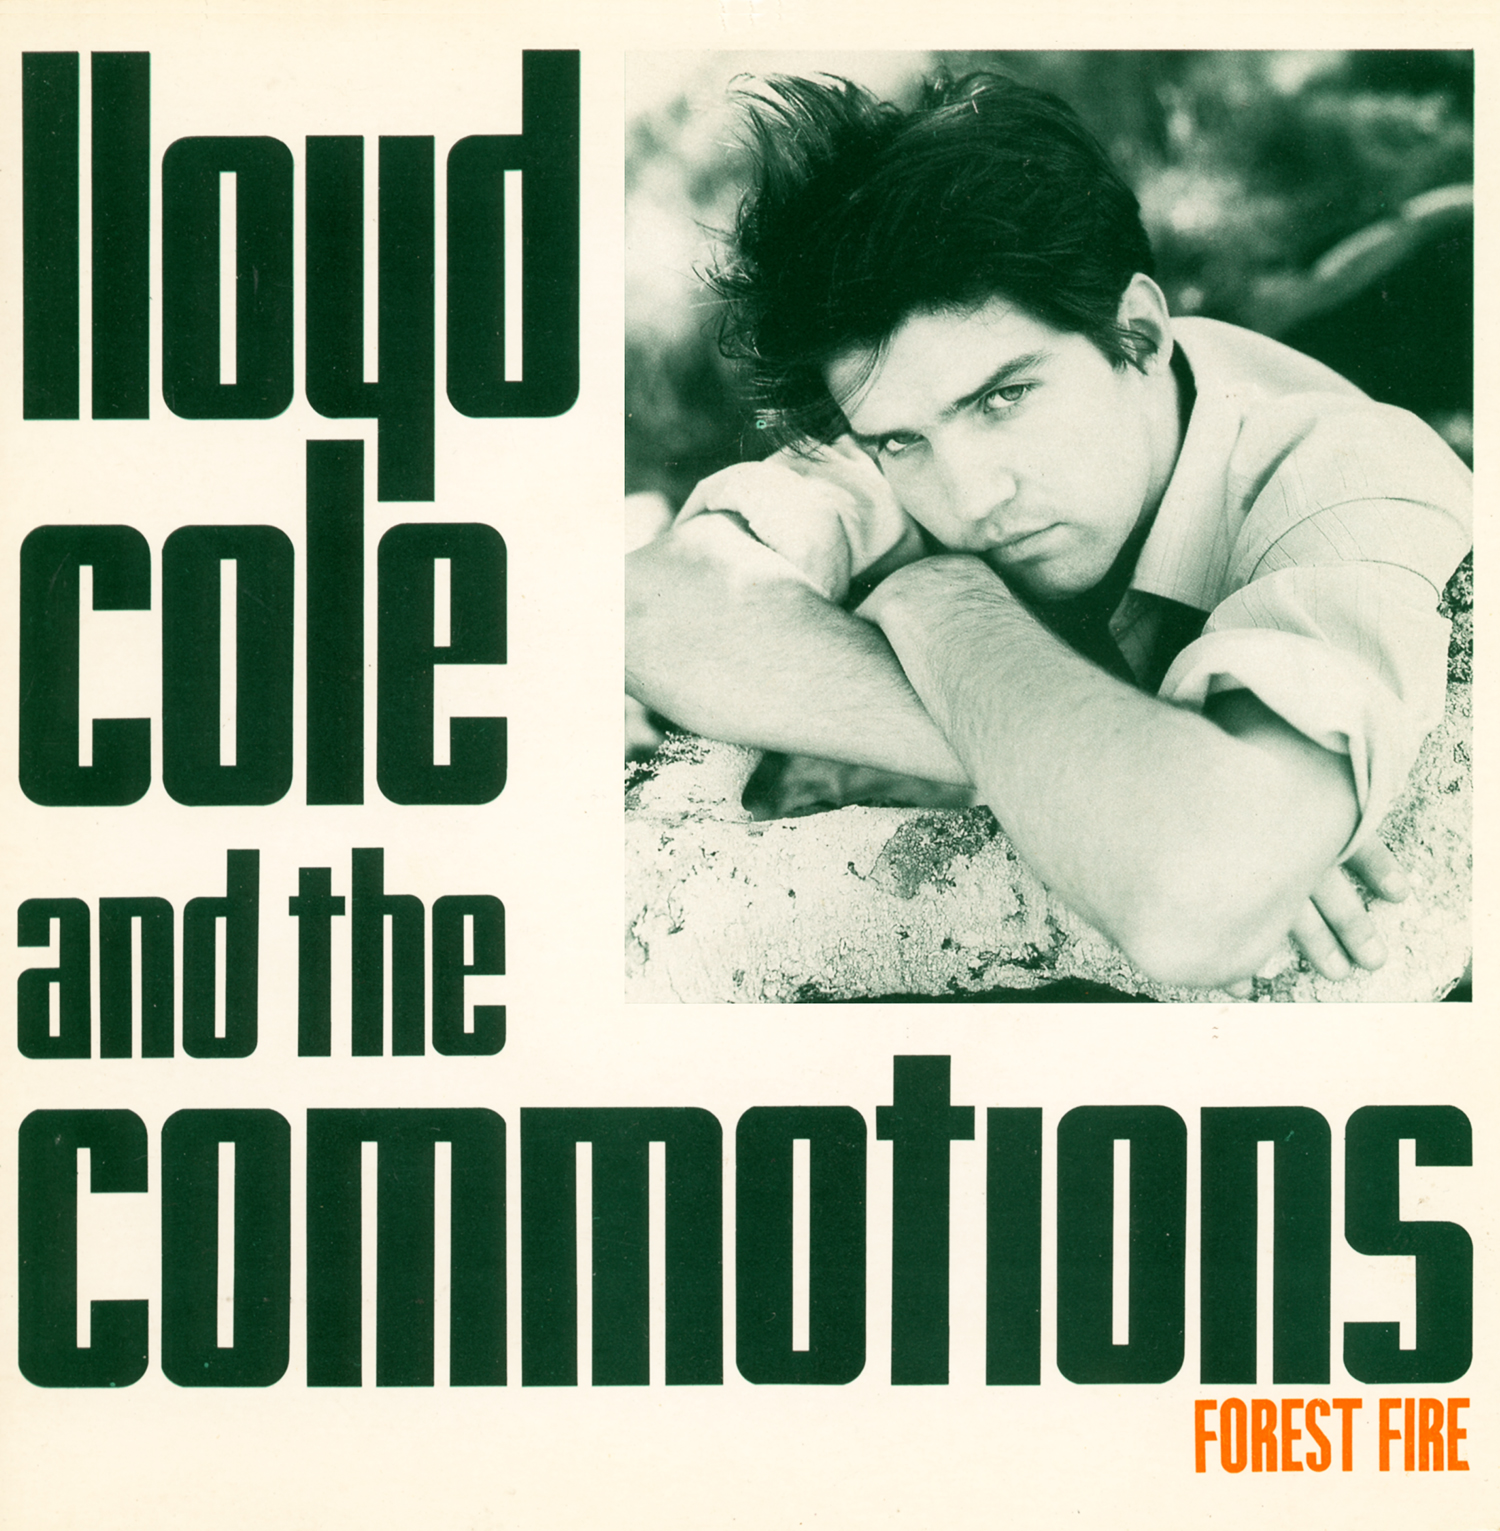 forest fire _ lloyd cole and the commotions